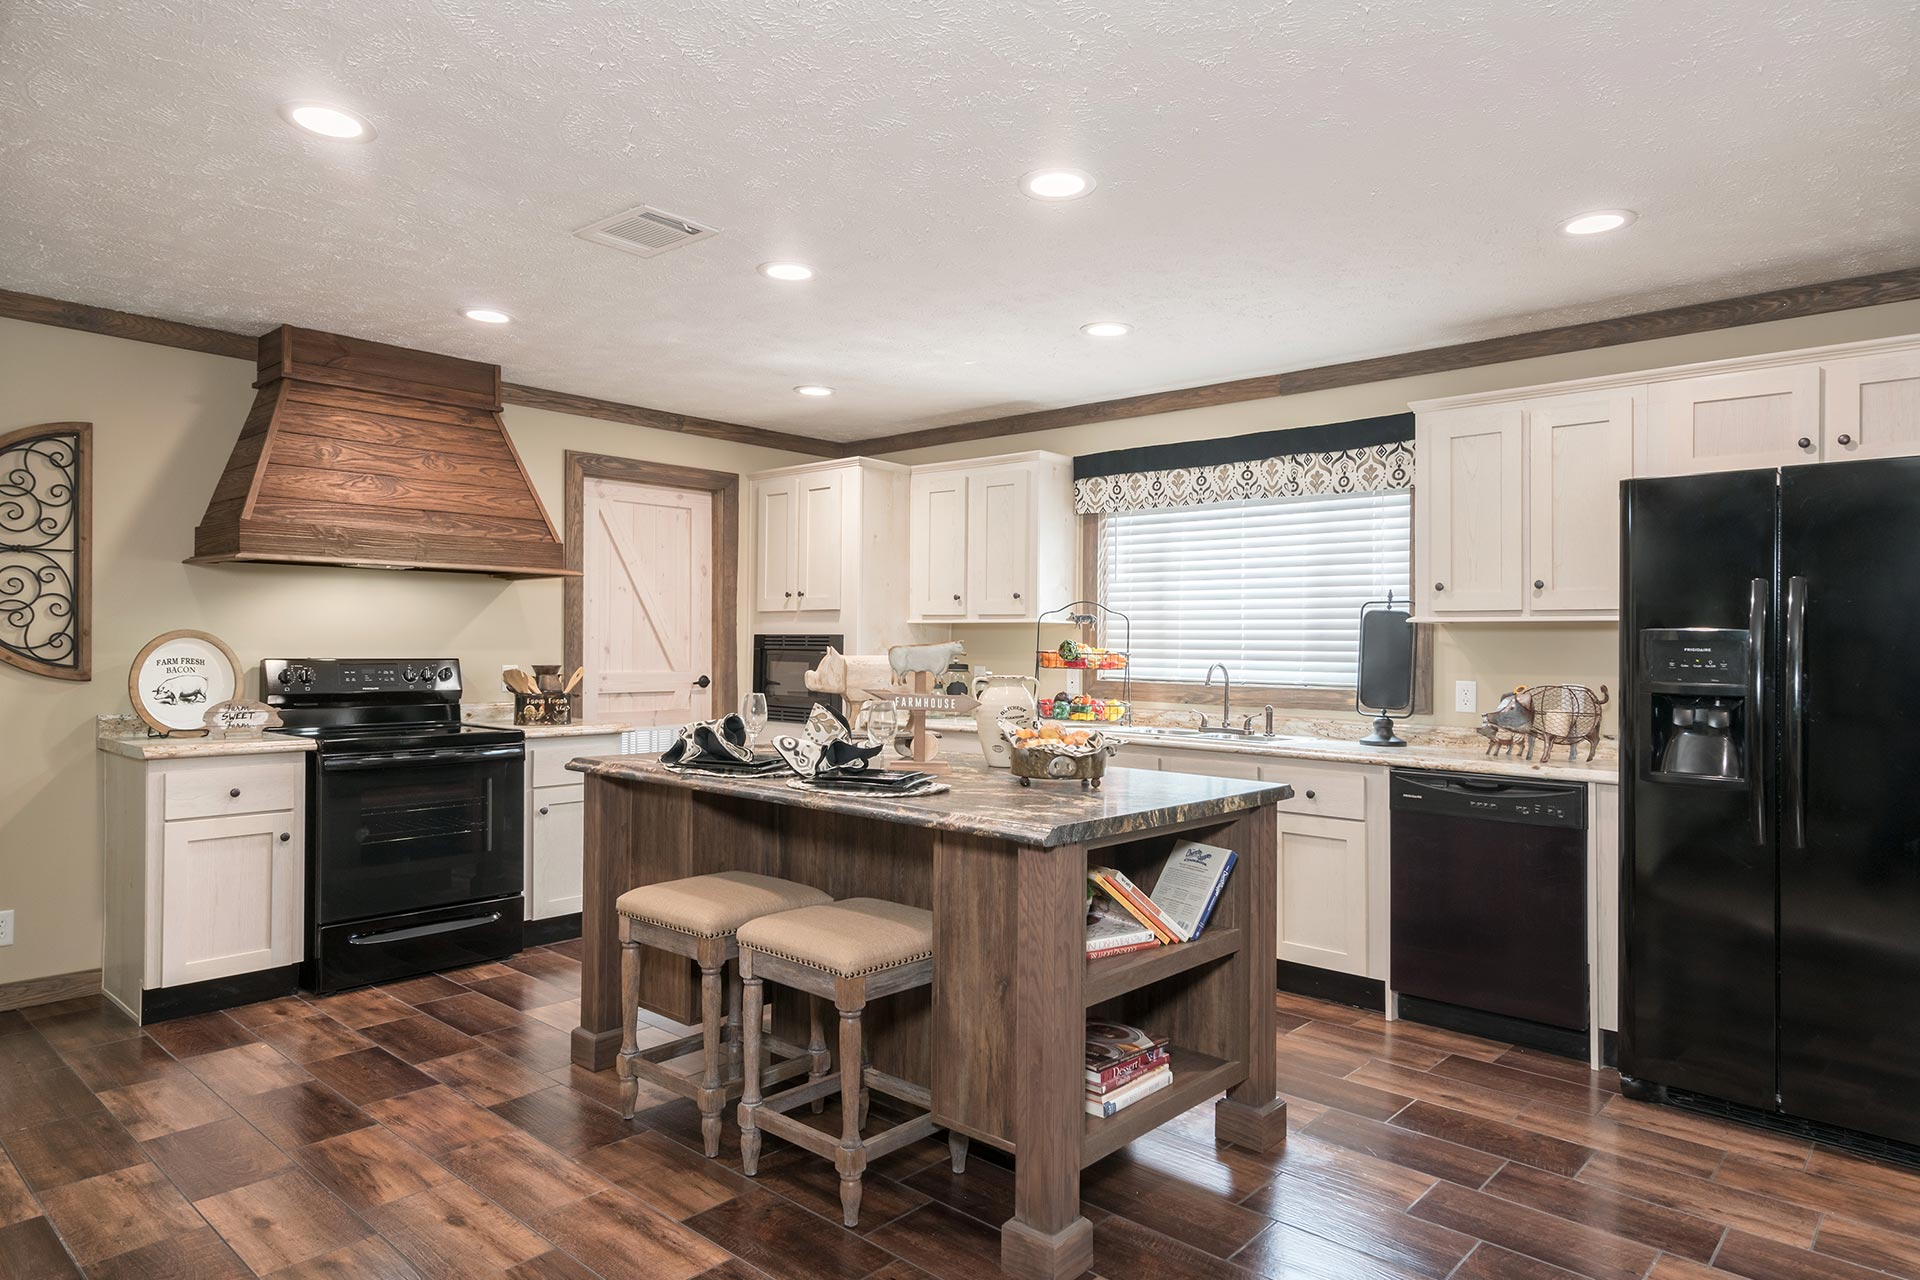 Tennessee Happy Homes in Lawrenceburg, TN - Manufactured Home Dealer on